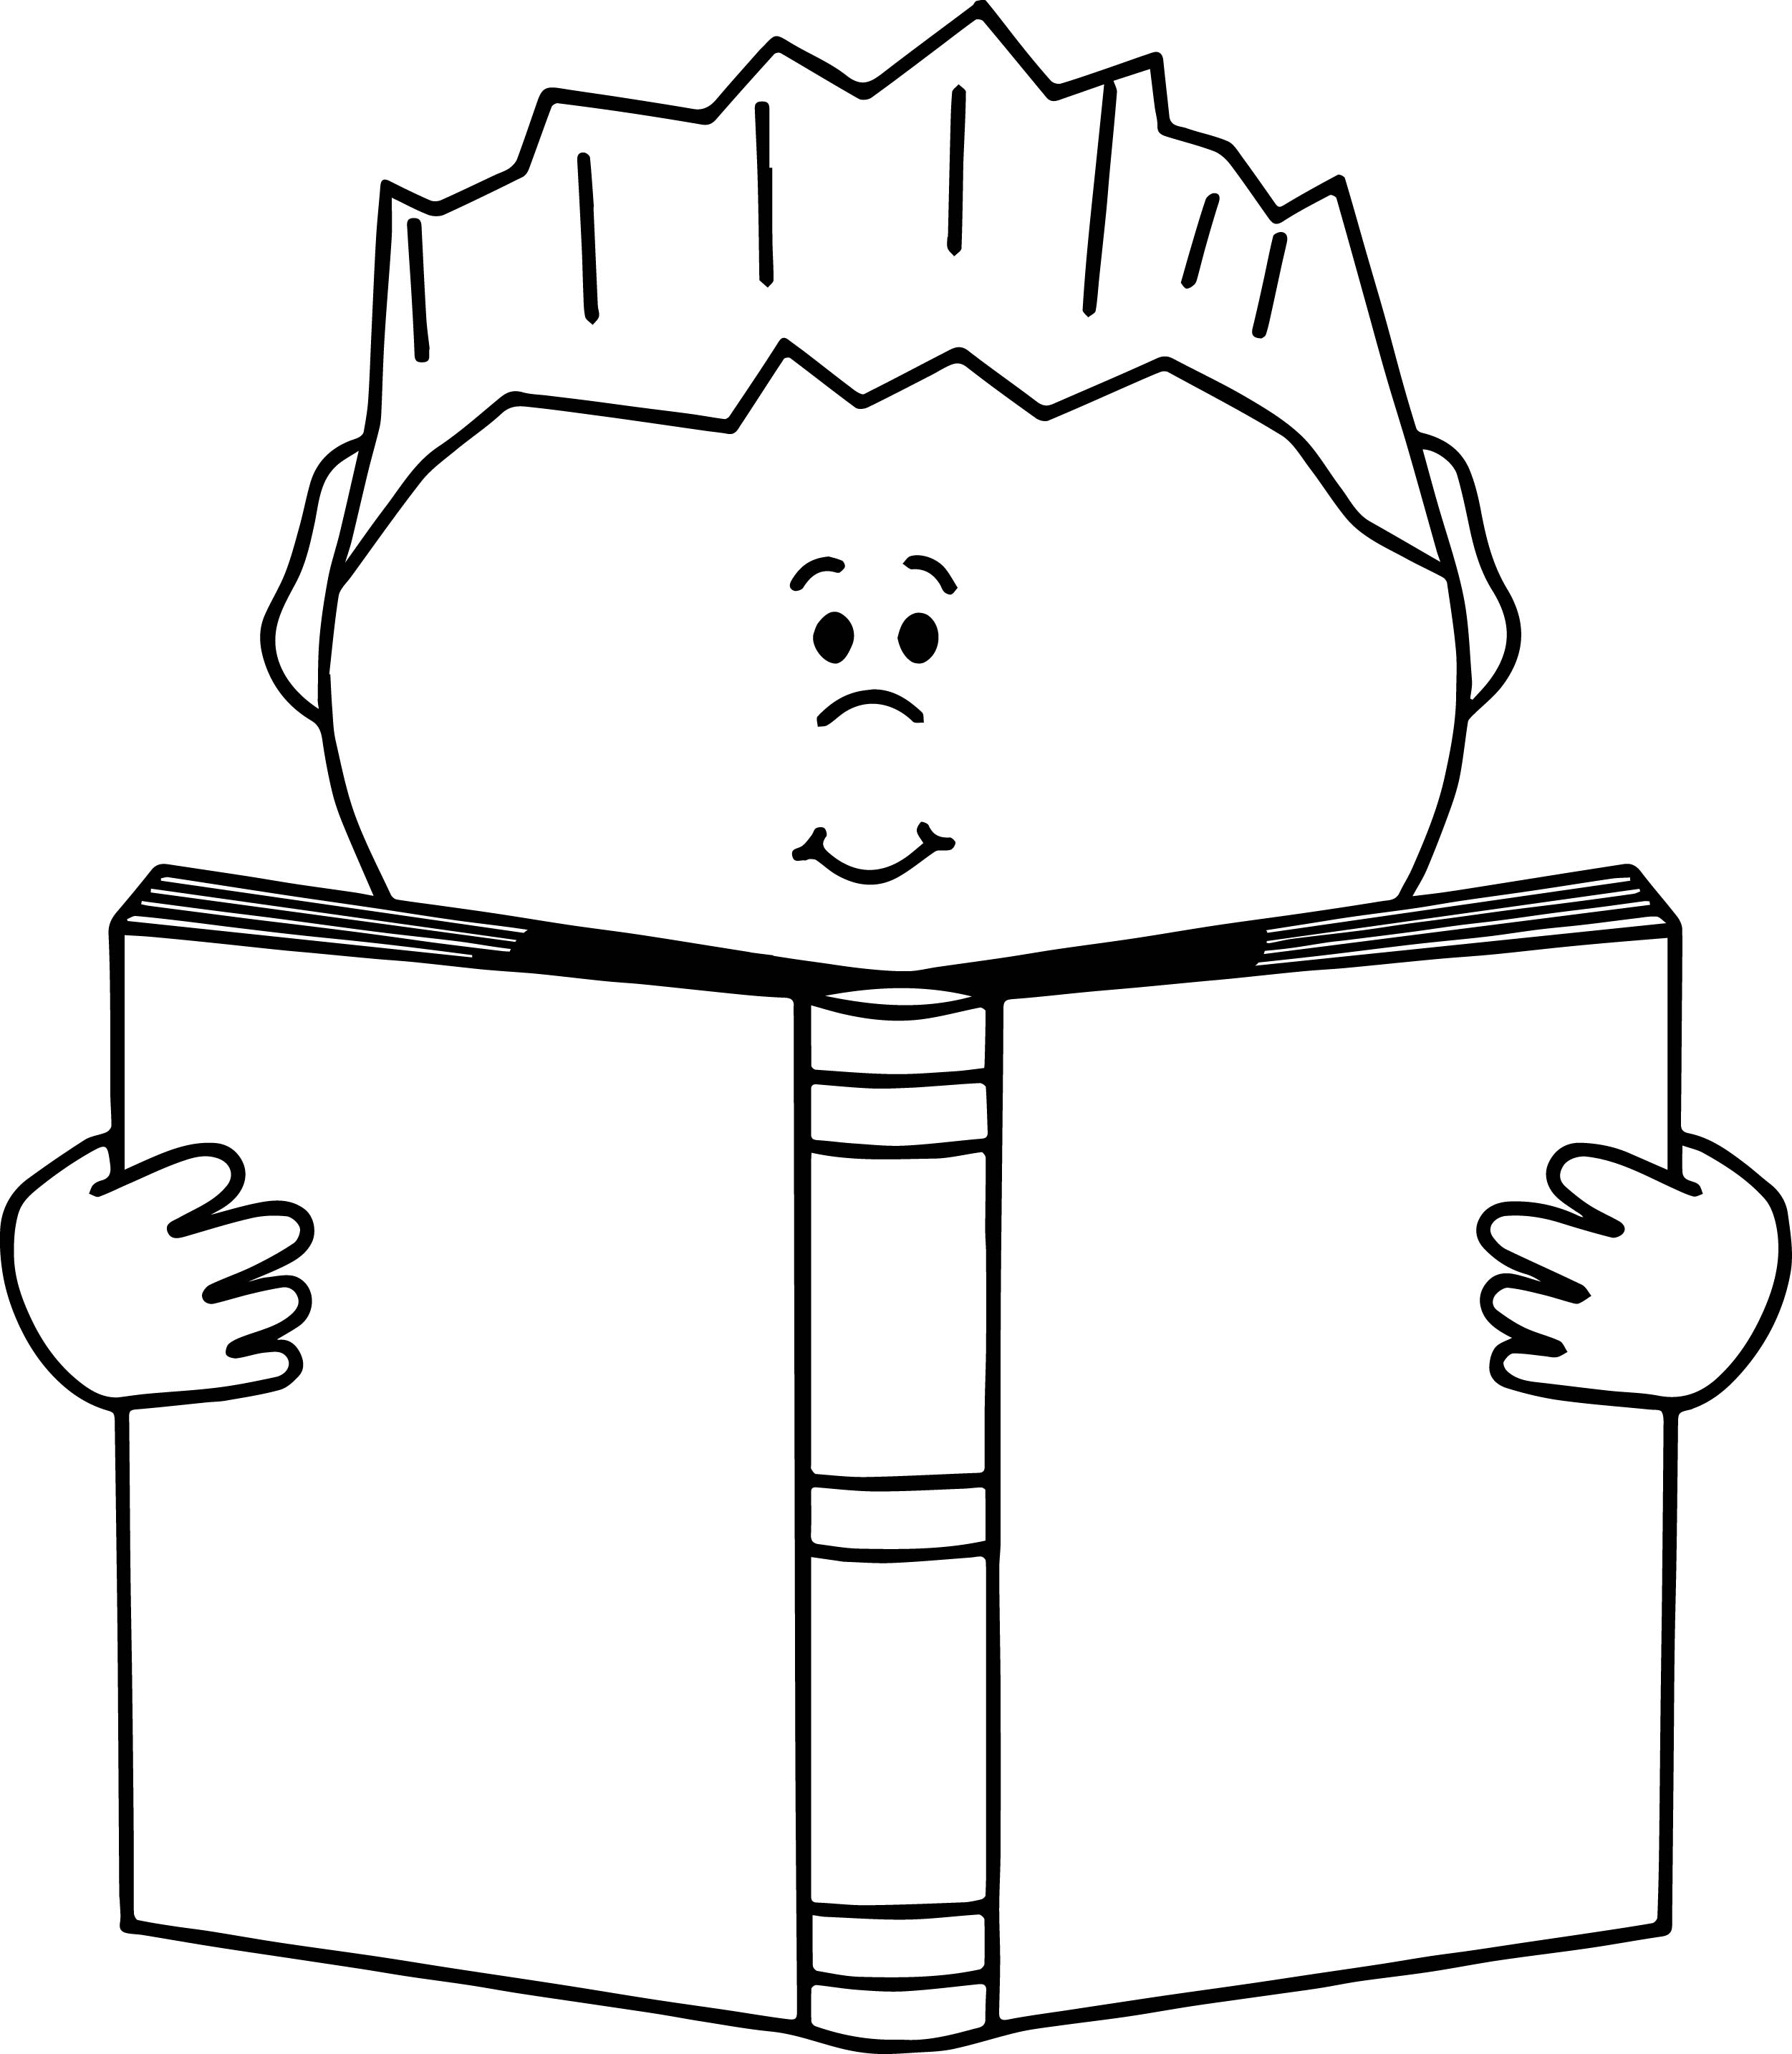 Read A Book Boy Coloring Page | Wecoloringpage.com